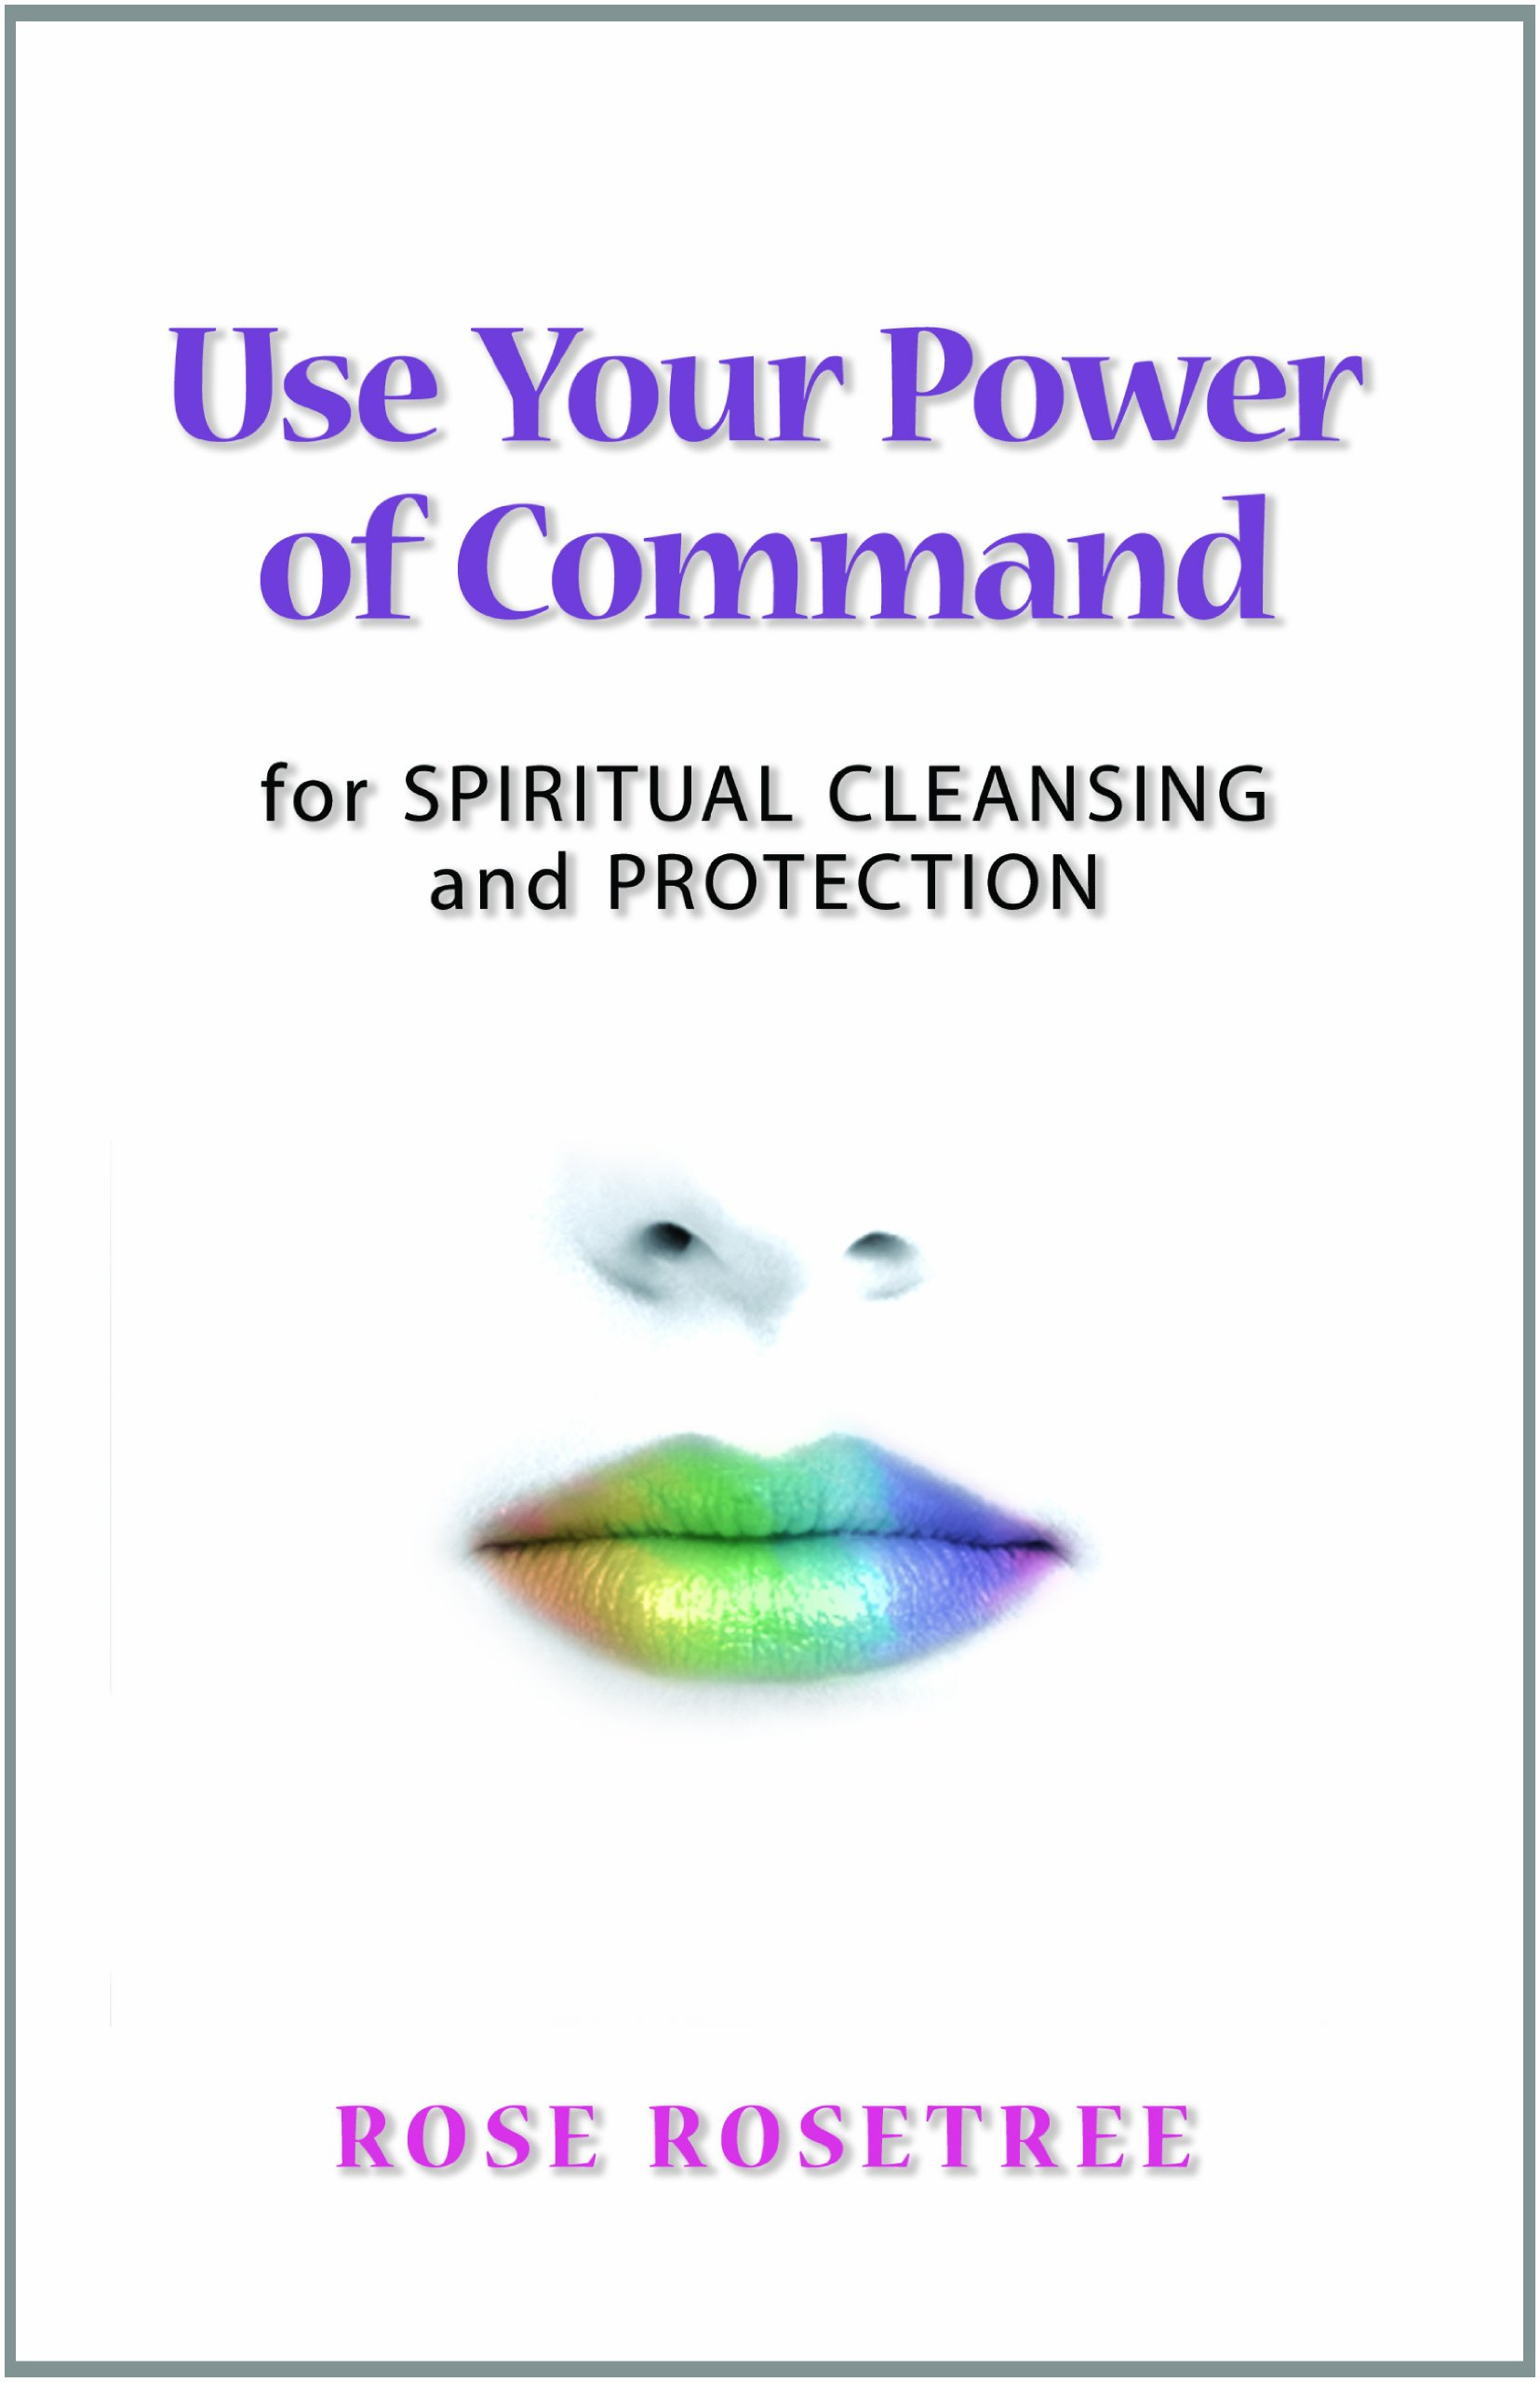 Use Your Power of Command for Spiritual Cleansing and Protection